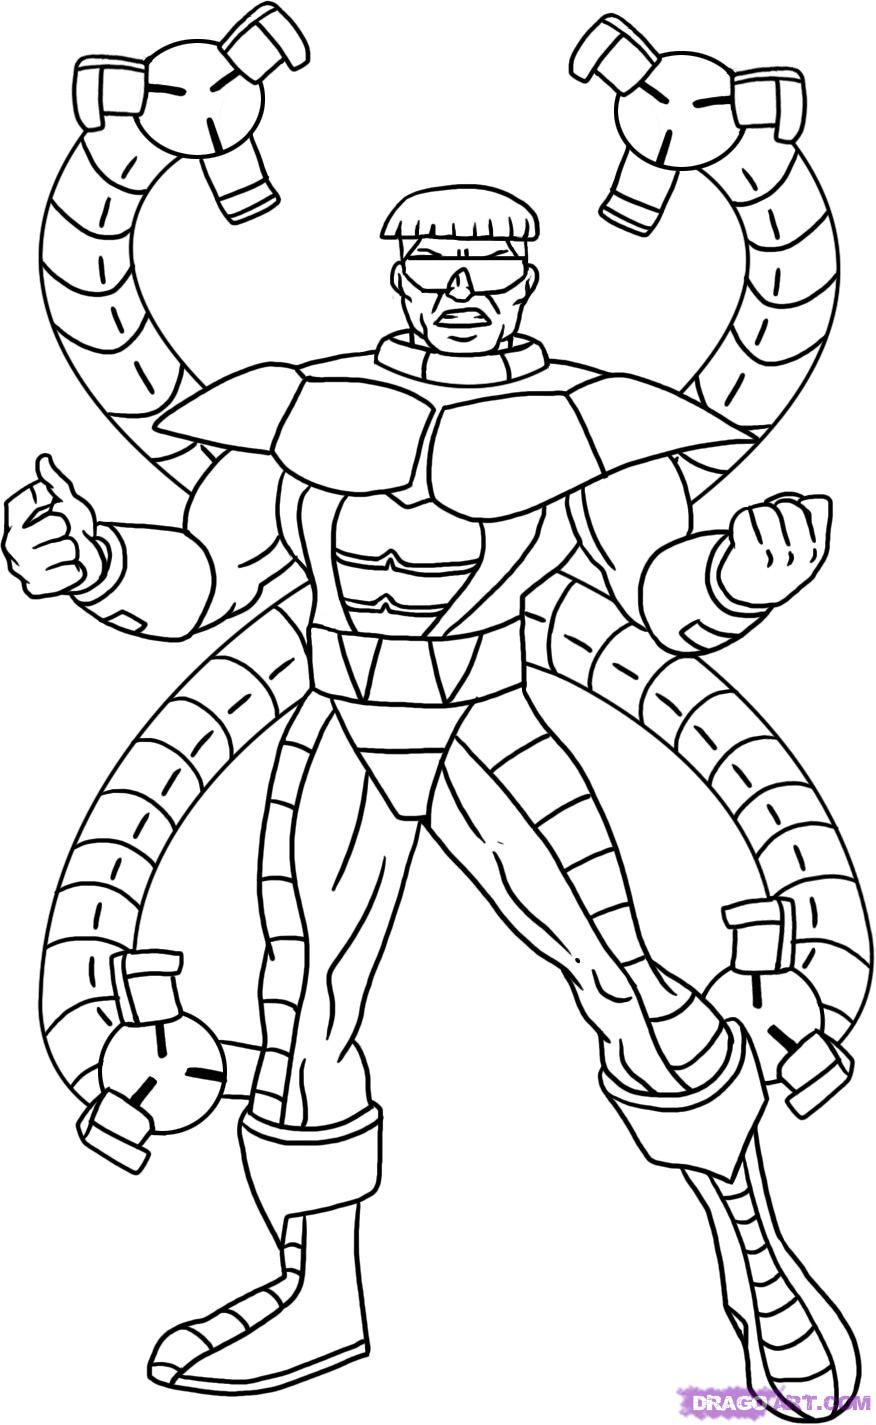 marvel coloring pages printable printable wolverine coloring pages in 2020 marvel coloring printable marvel pages